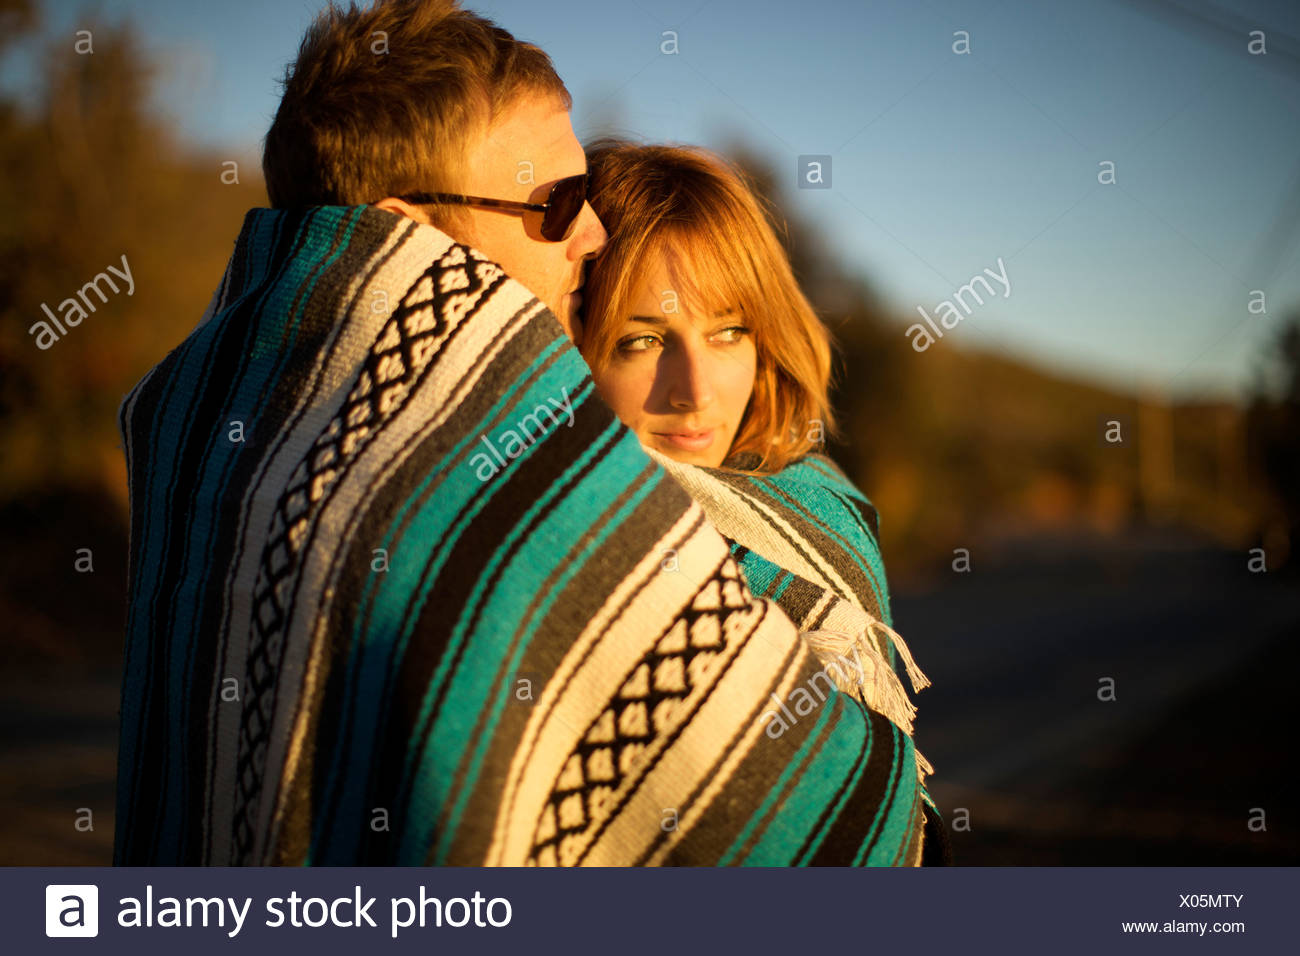 Couple wraps themselves in a blue and white blanket and watch the sunset. - Stock Image